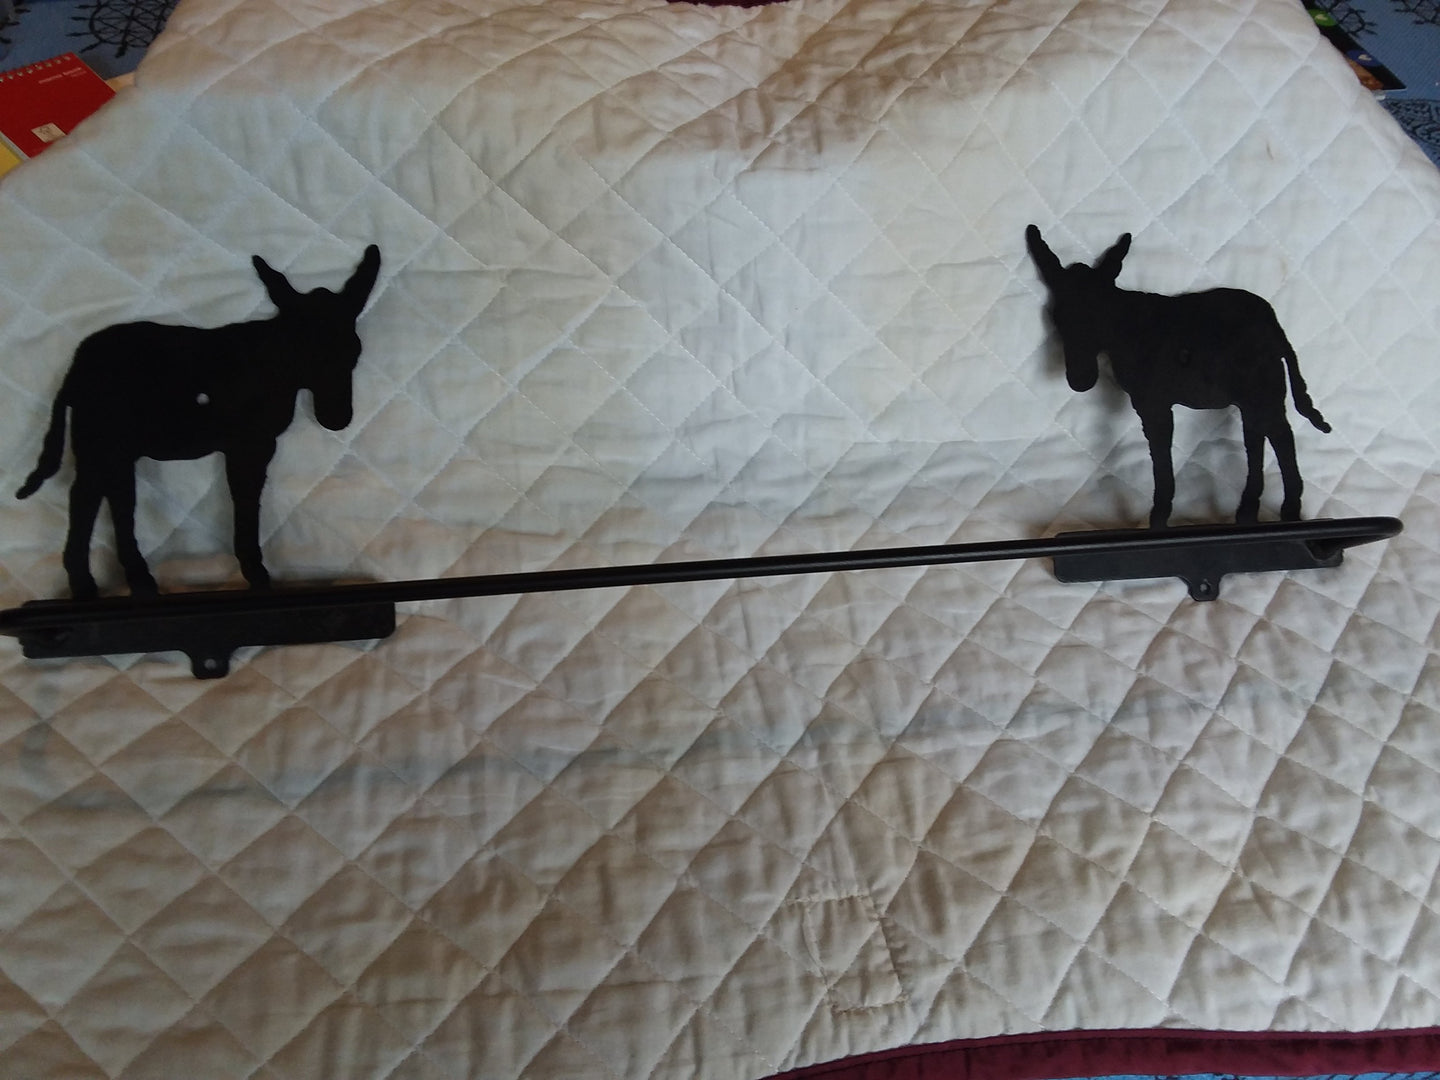 Metal Towel Bar - Donkey